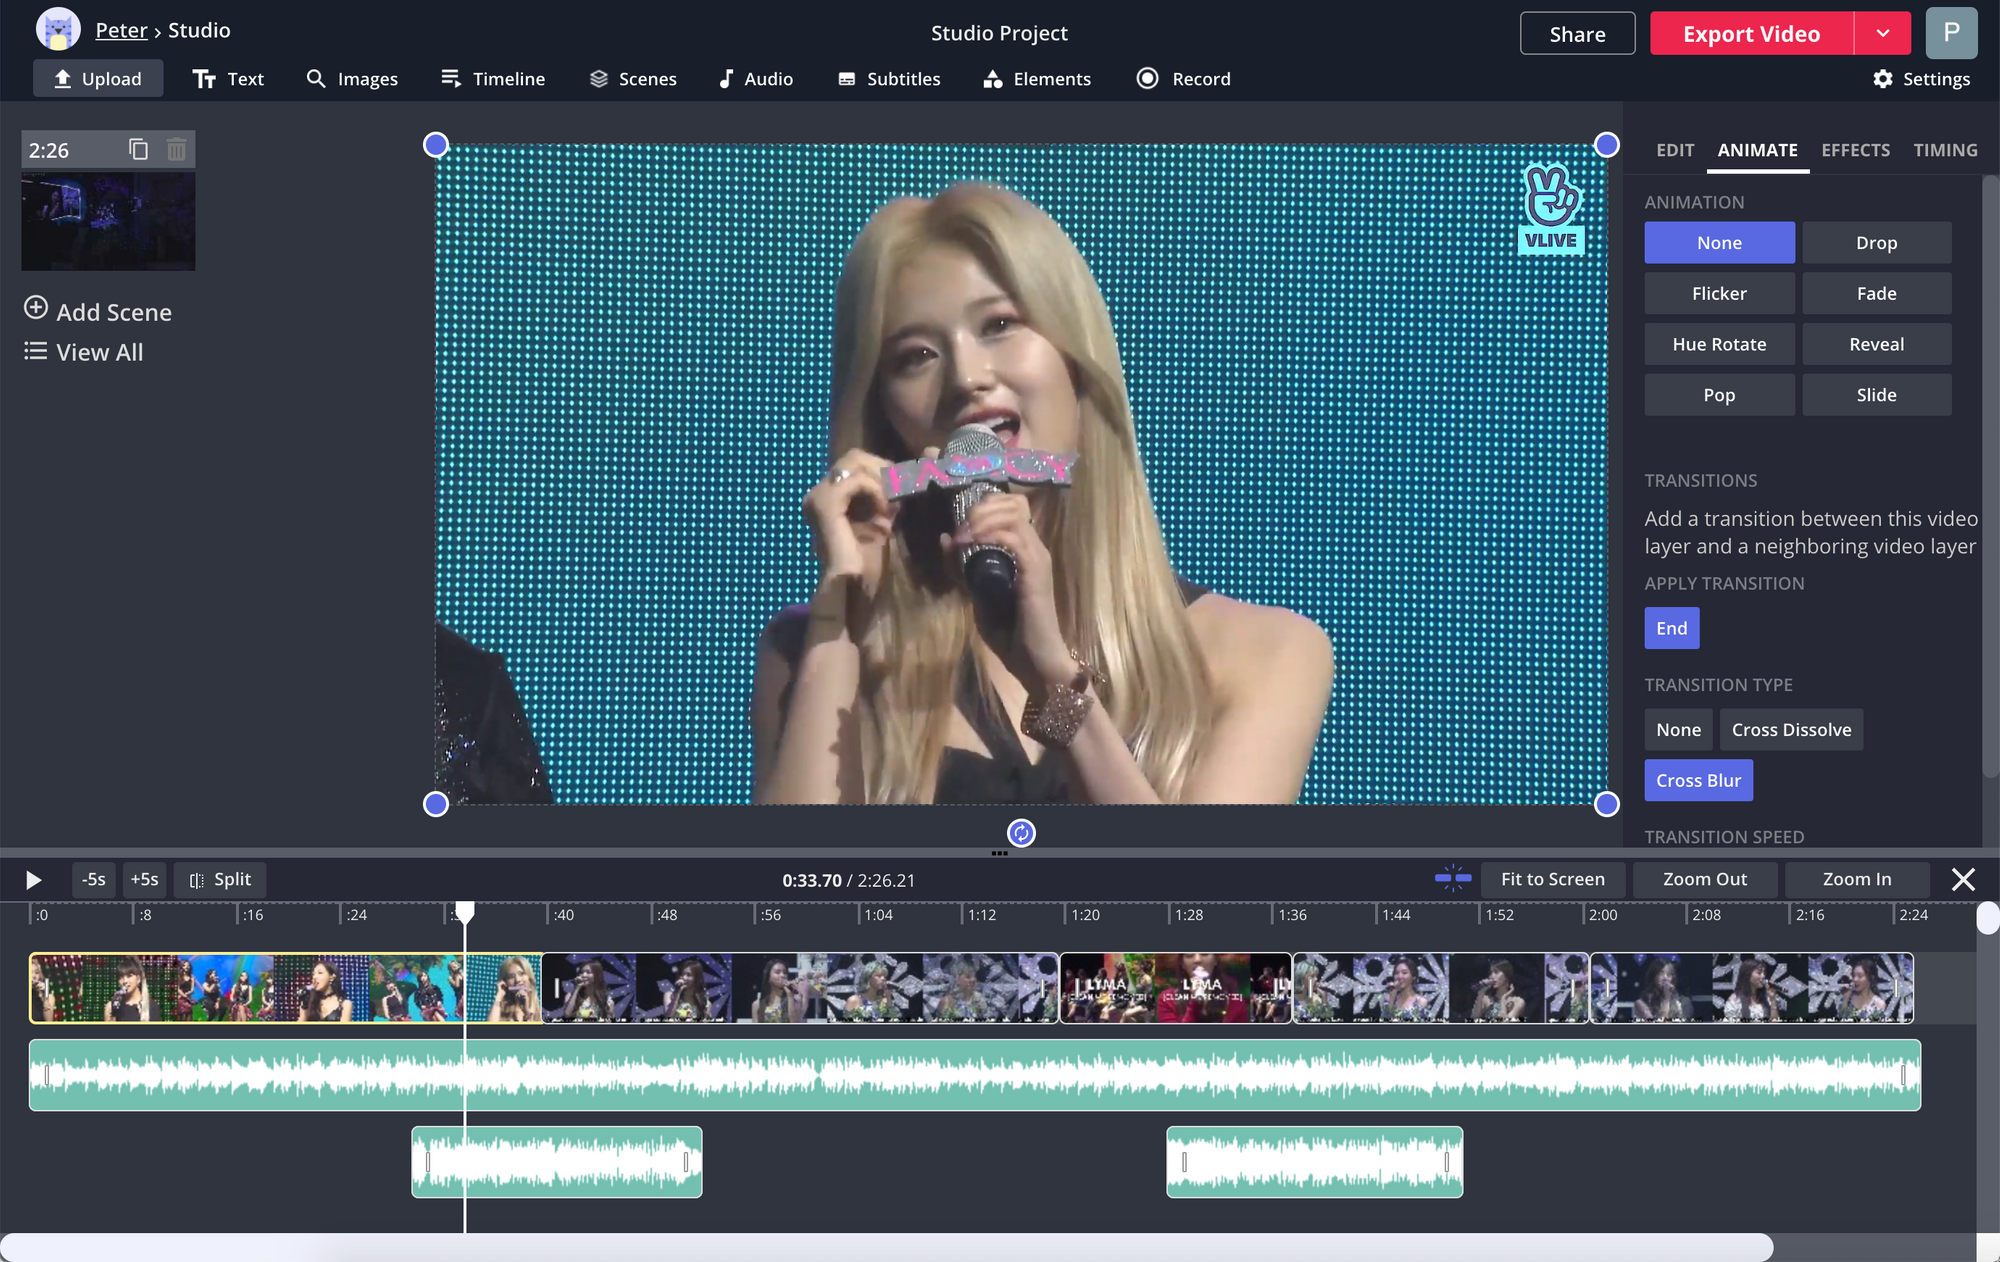 A screenshot of a mashup video being edited in the Kapwing Studio timeline.